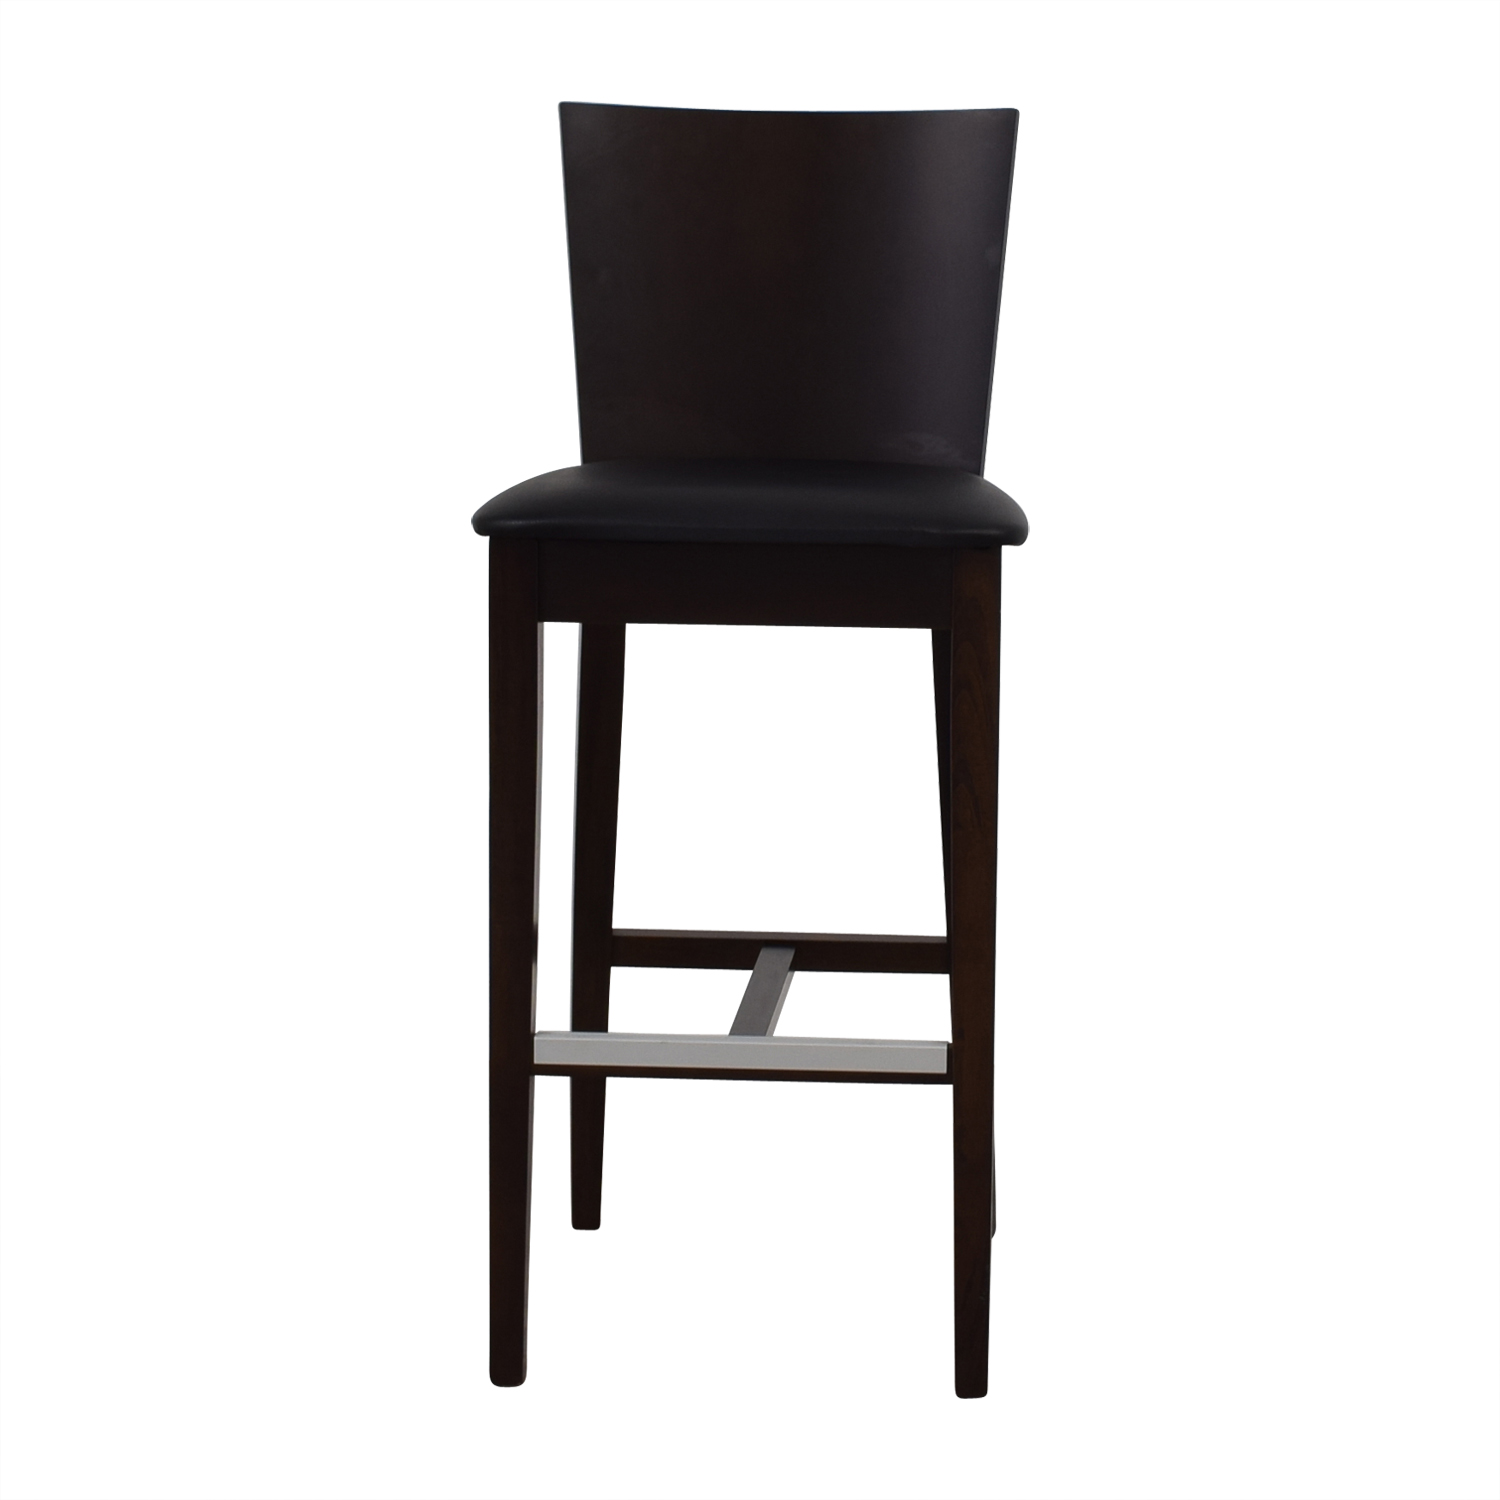 Newspec Newspec Black and Cherry Wood Bar Chair coupon